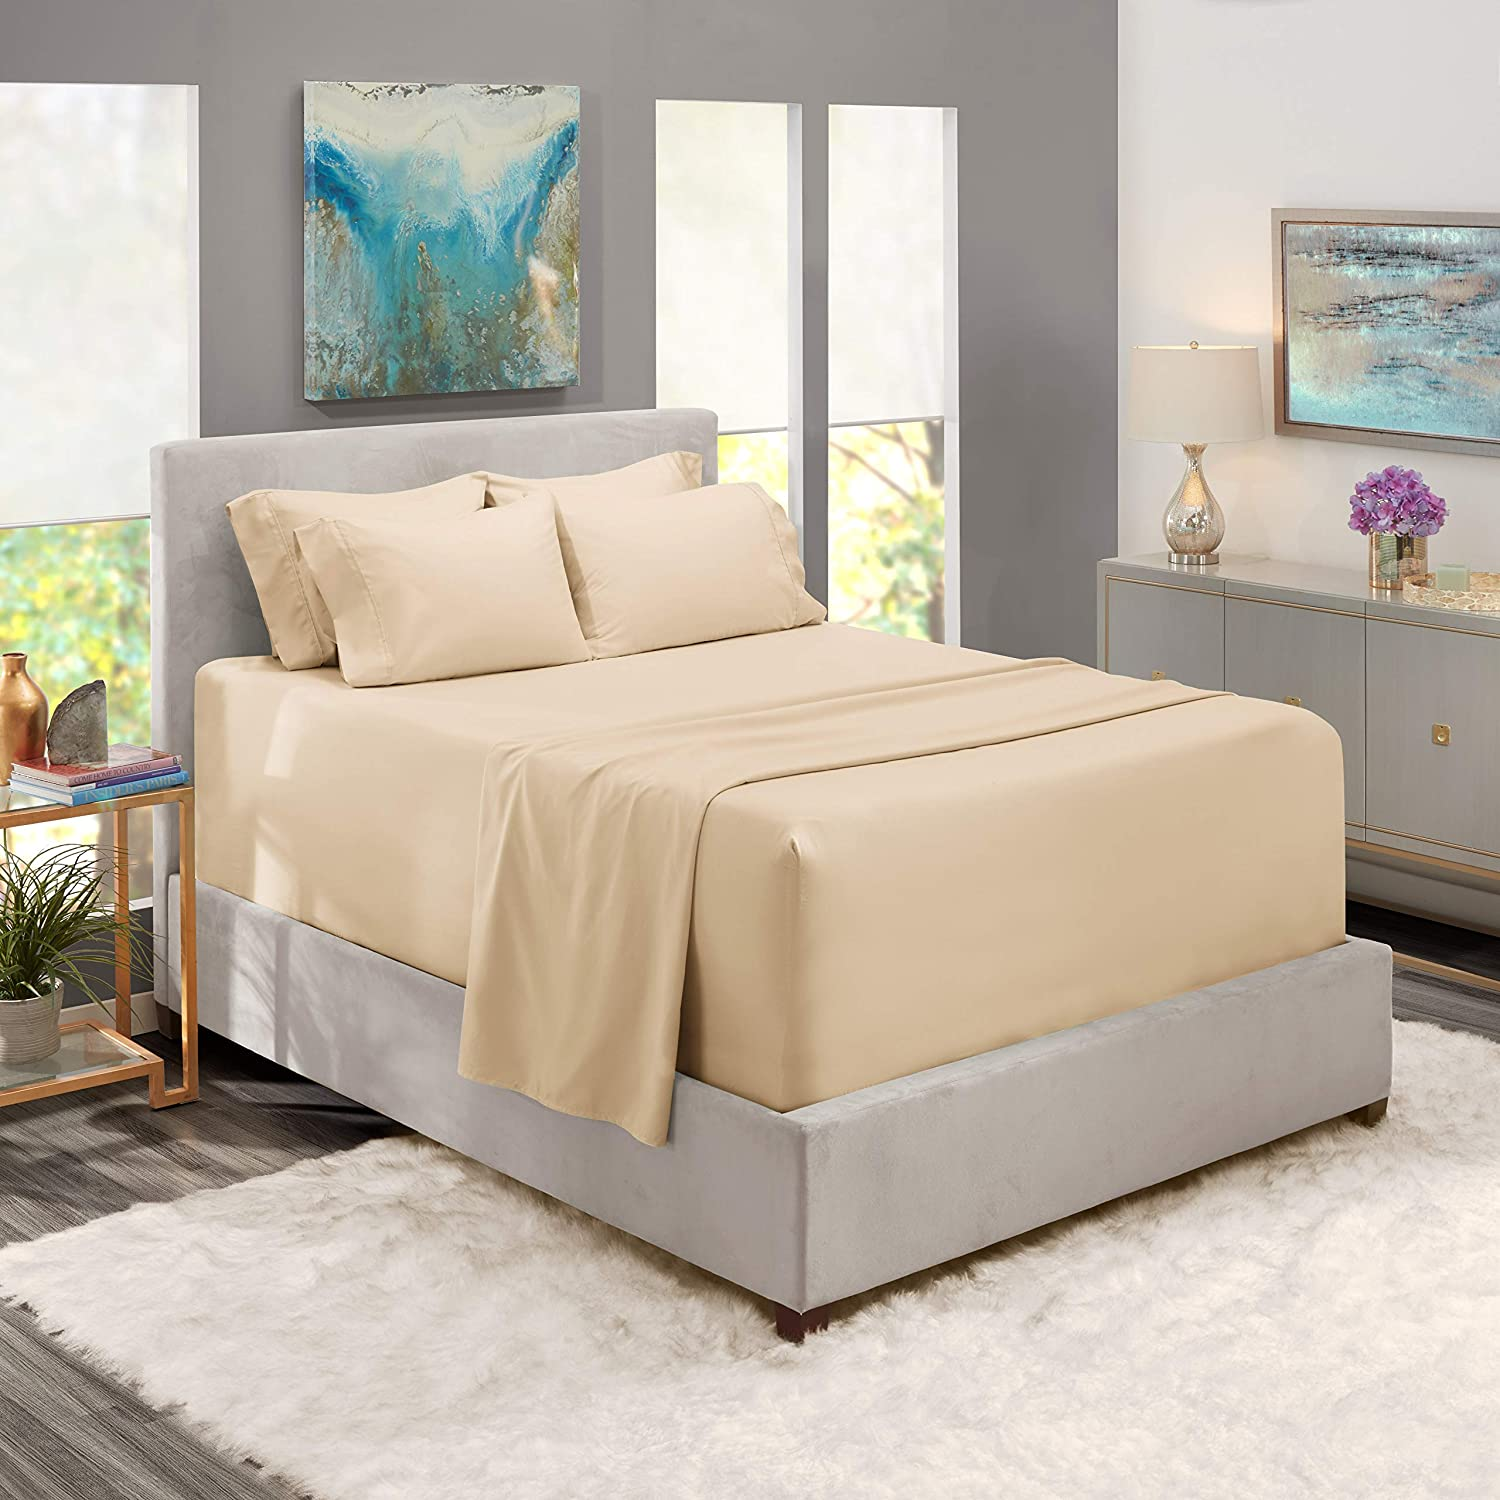 Nestl Extra Deep Pocket King Bed Sheets – 6 Piece Cream Deep Pocket King Size Sheets – Hotel Deep Bed Sheets - Deep King Size Fitted Sheet Set Super Deep Sheets fits 18 Inch to 24 Inche Mattress 6 PC